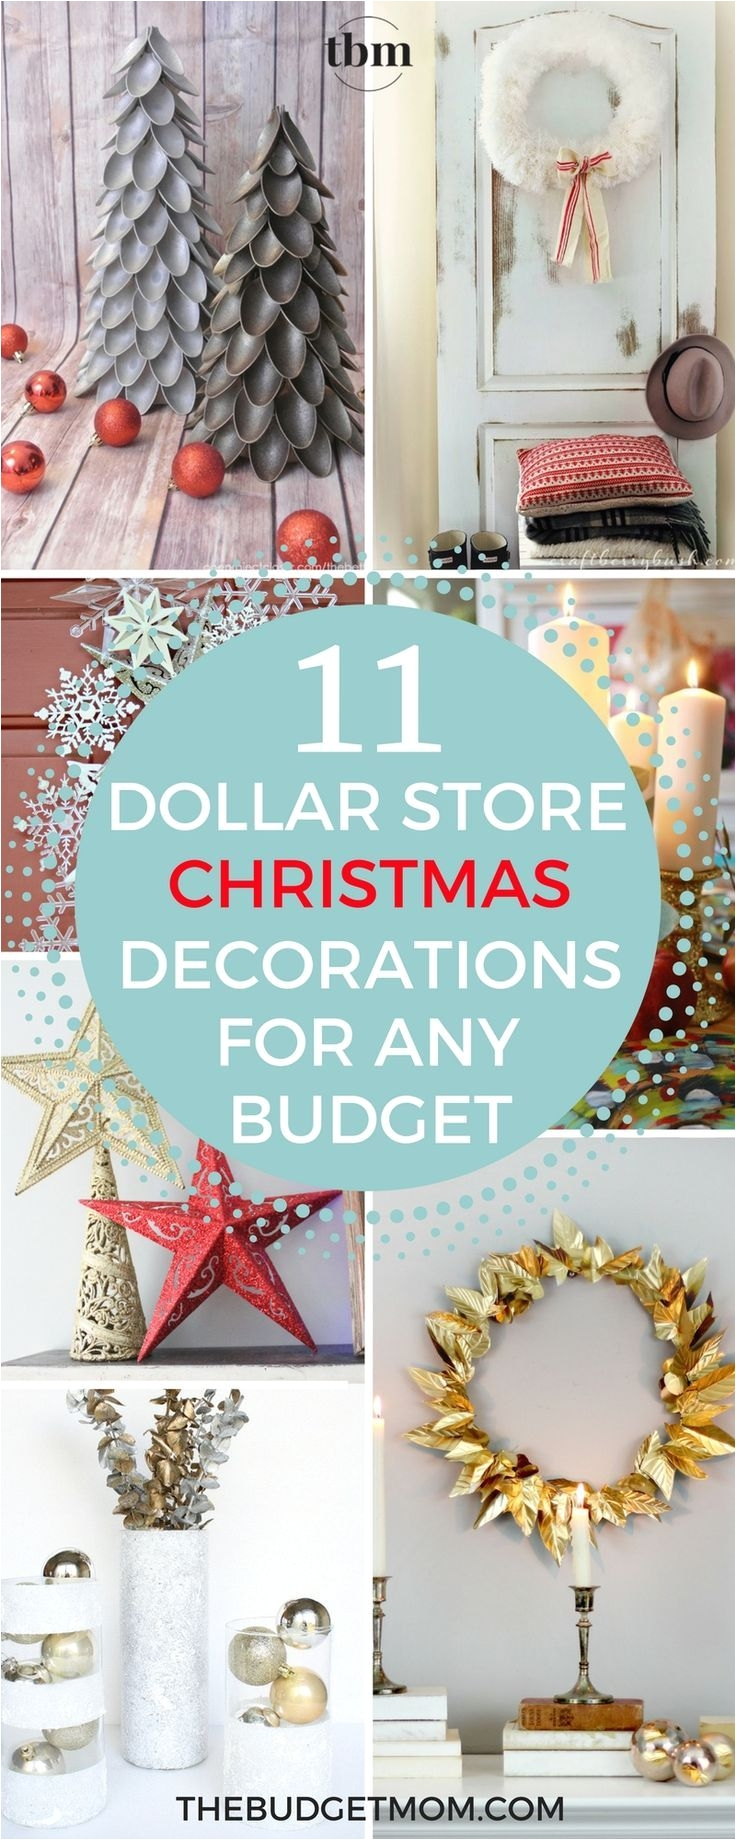 dollar general christmas decorations 11 glamorous dollar store christmas decorations for any budget